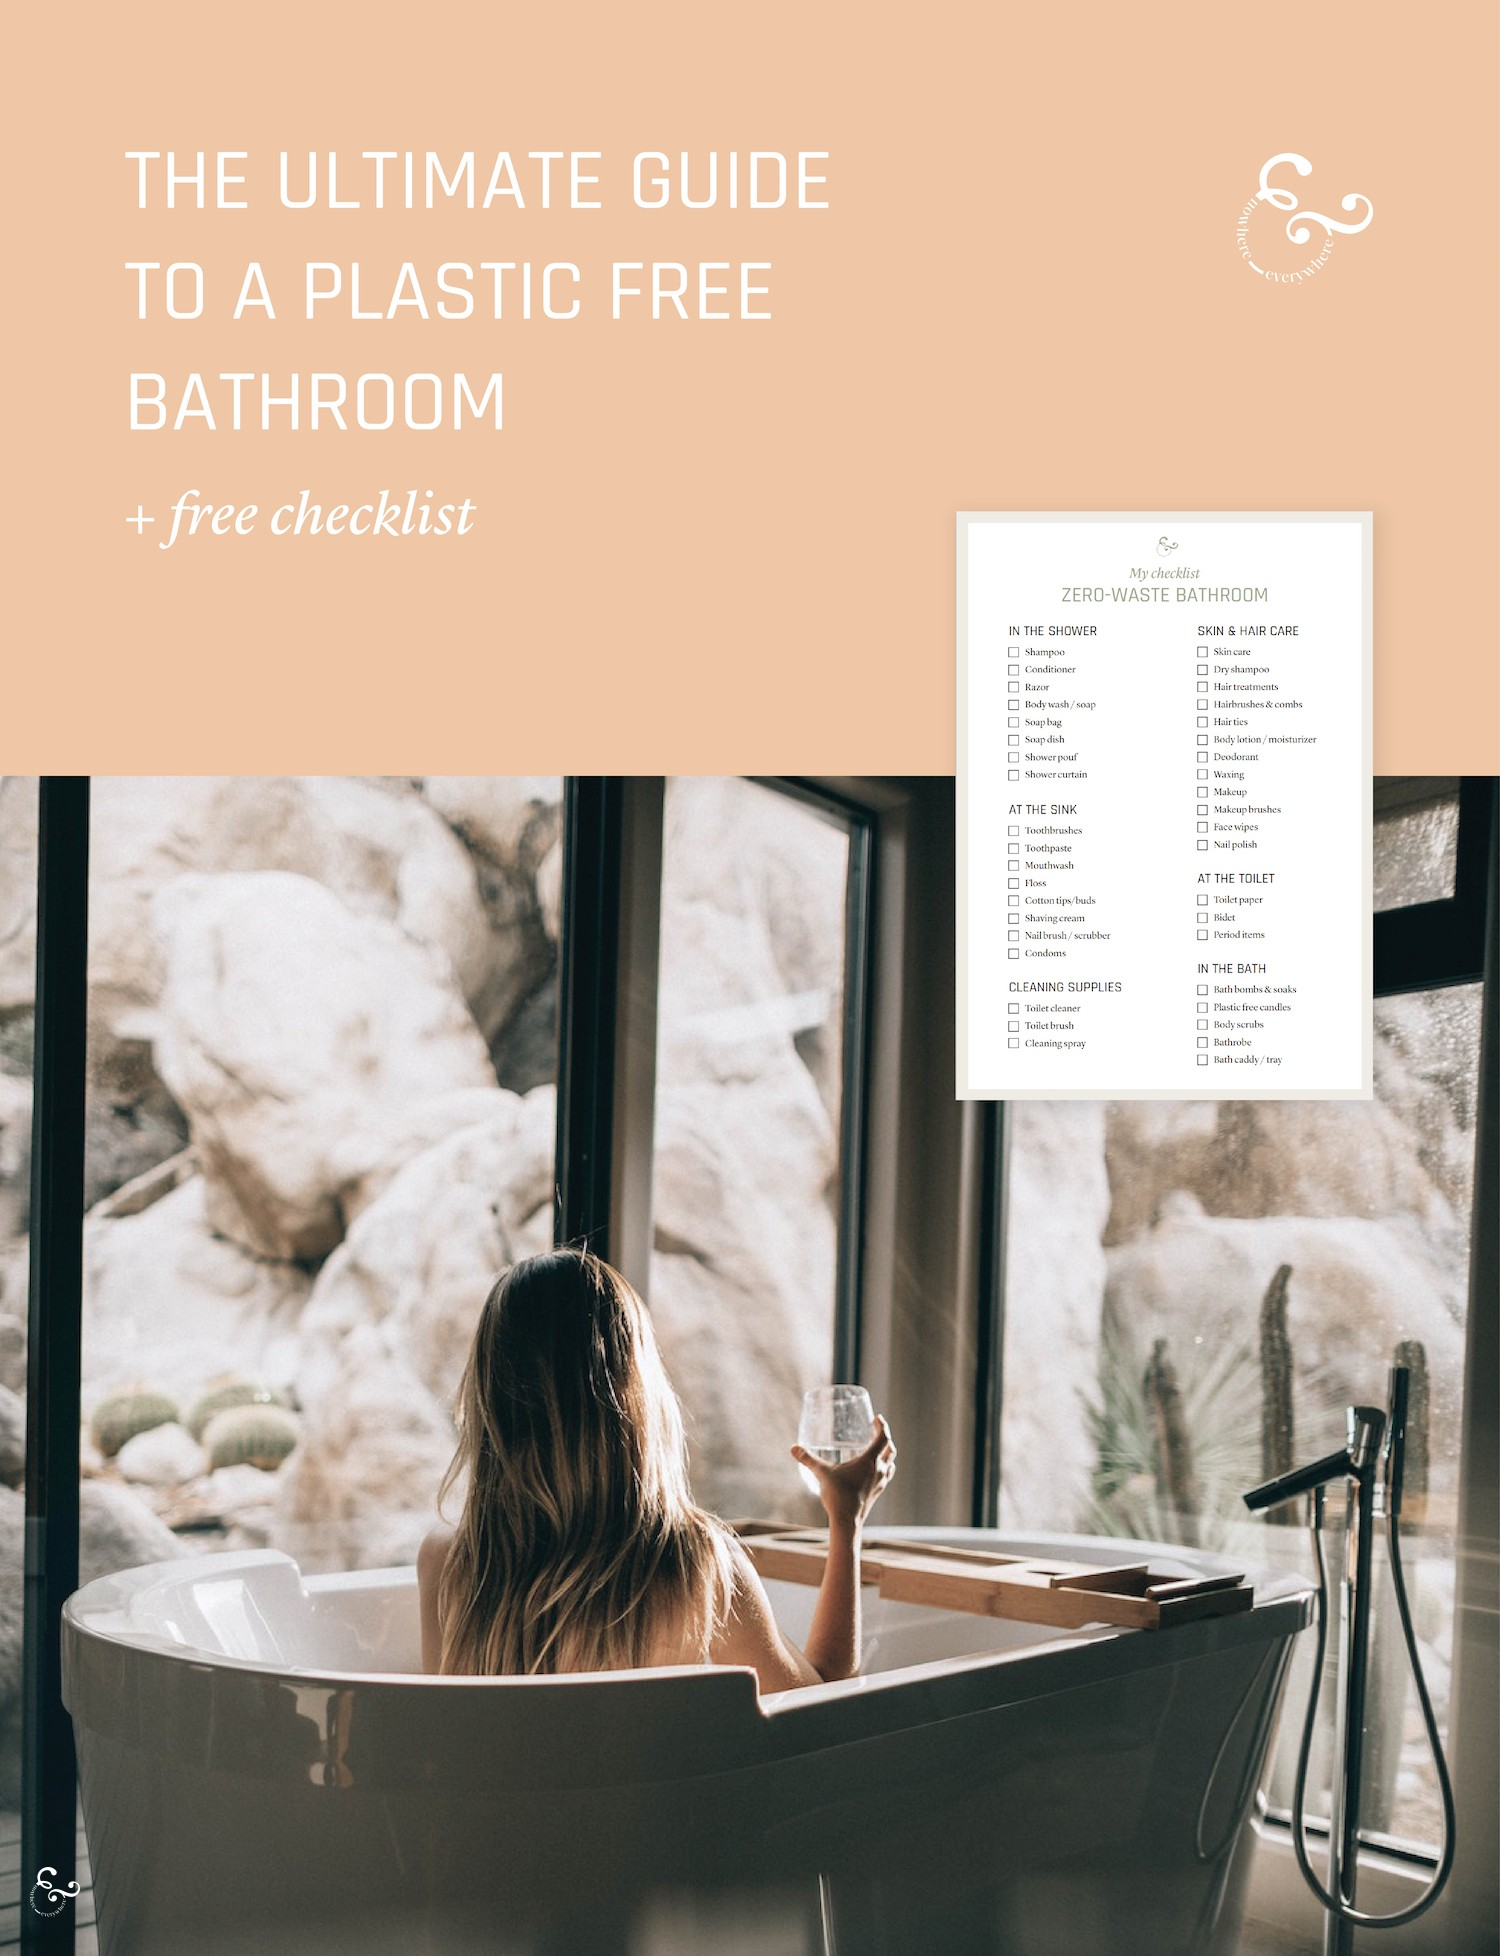 The Ultimate Guide to Your Plastic Free Zero Waste Bathroom Nowhere & Everywhere How to go plastic free